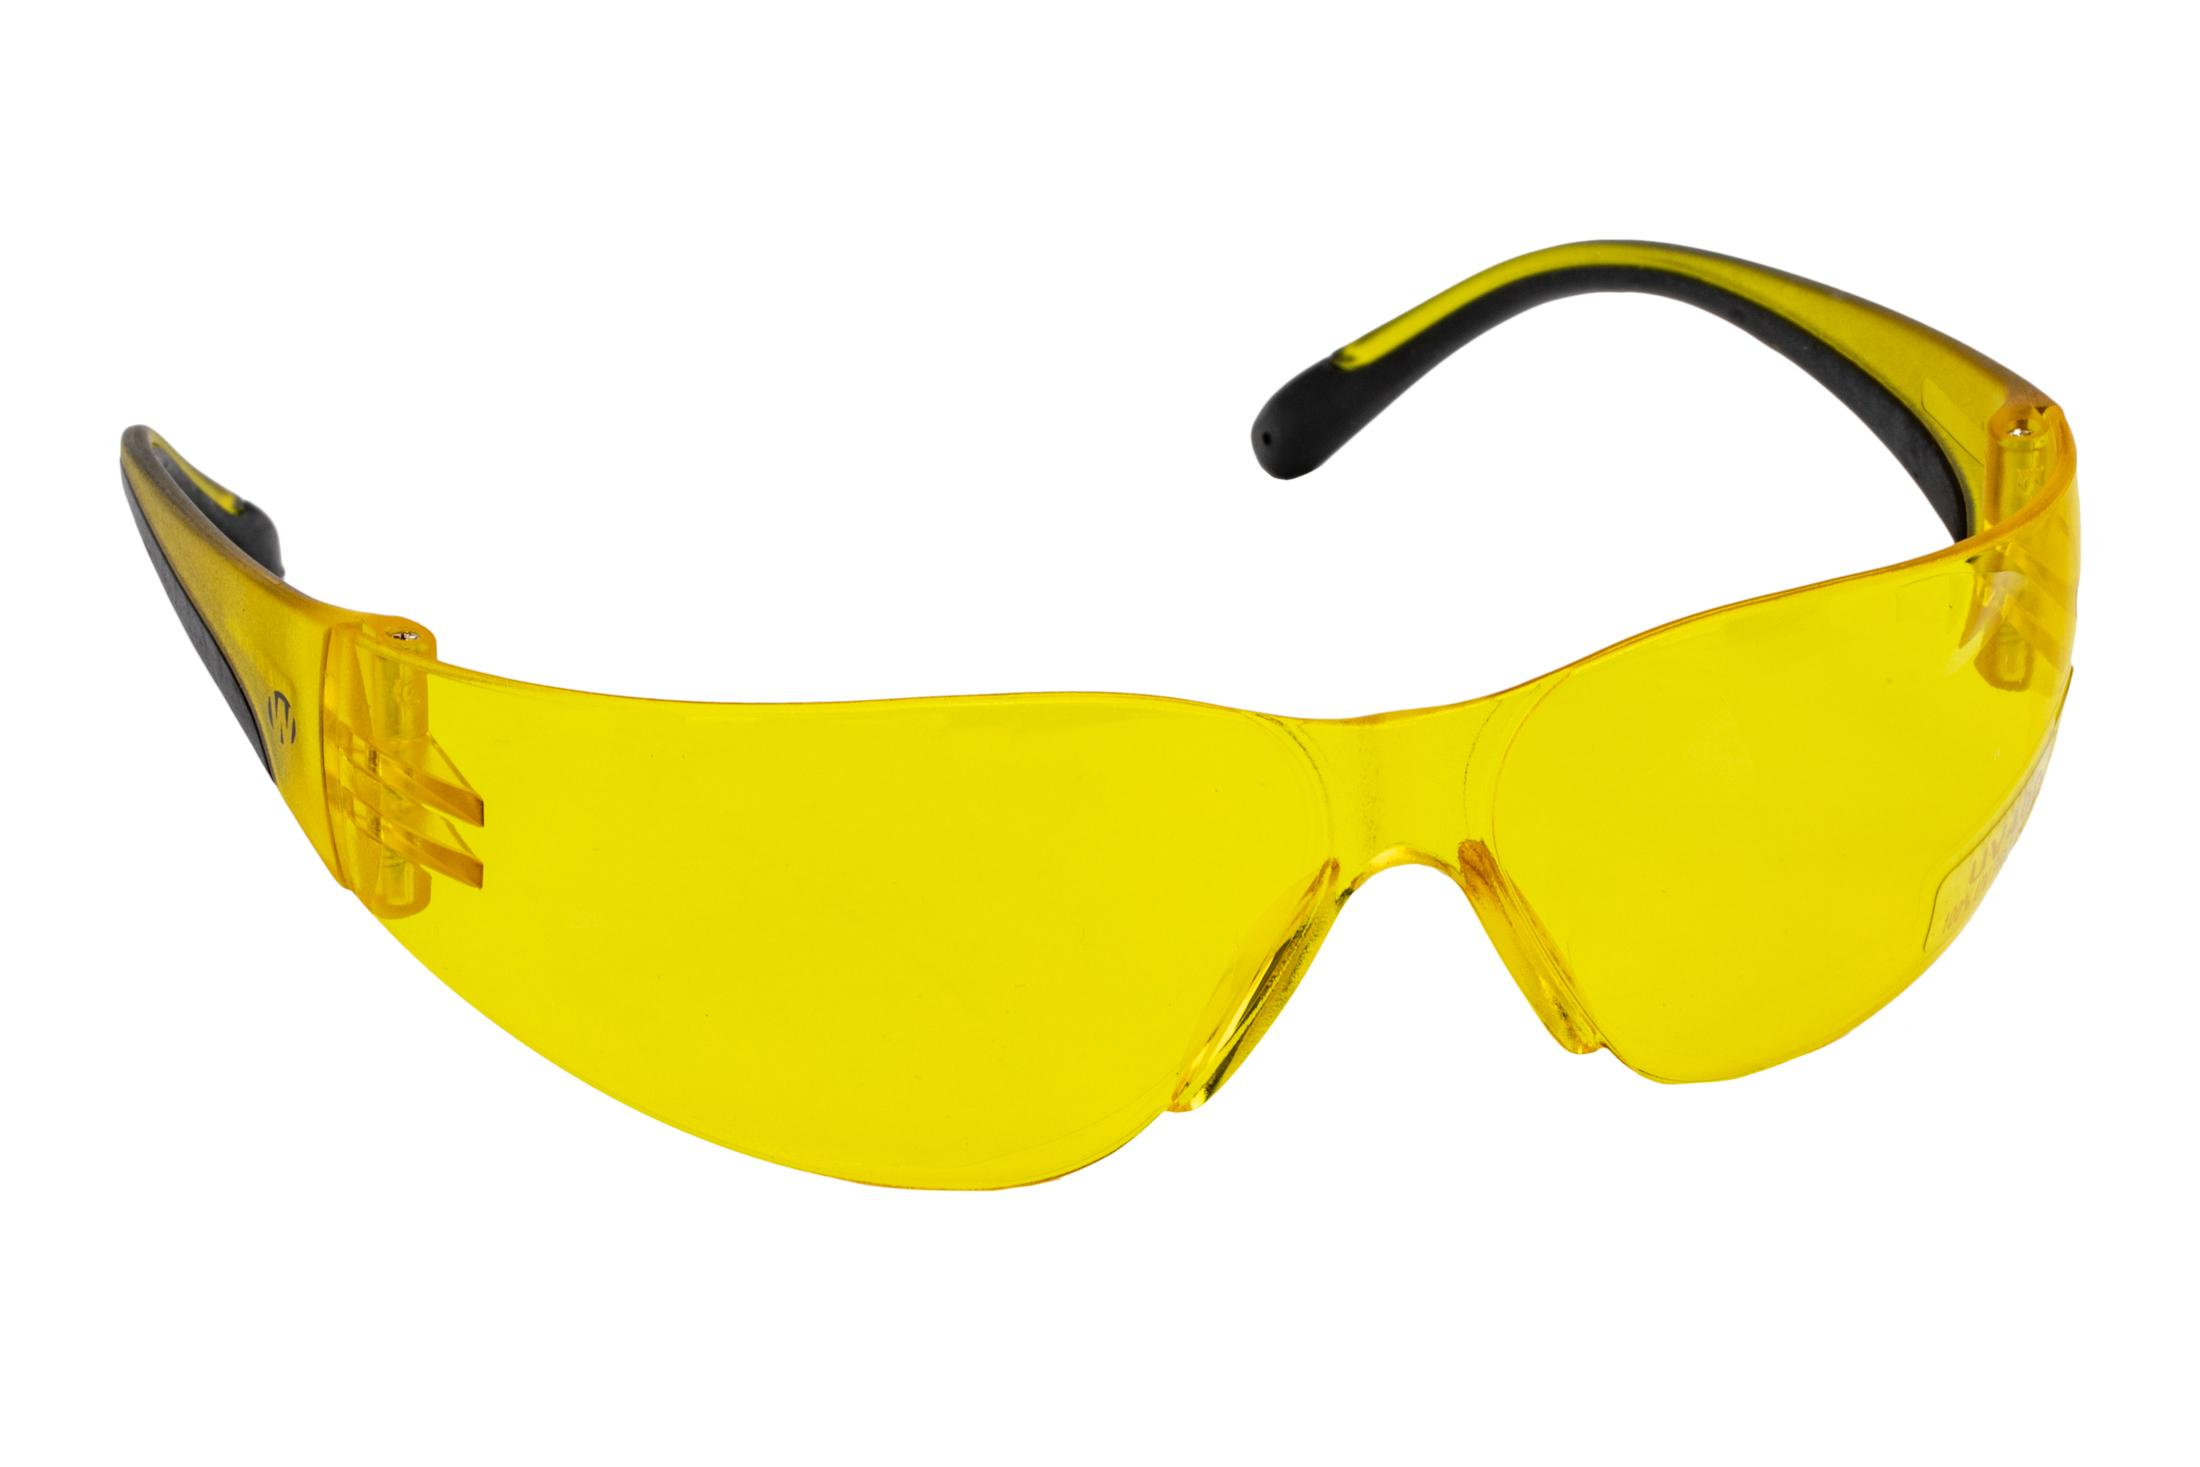 The Walkers women/youth safety glasses features a wraparound style with yellow lenses